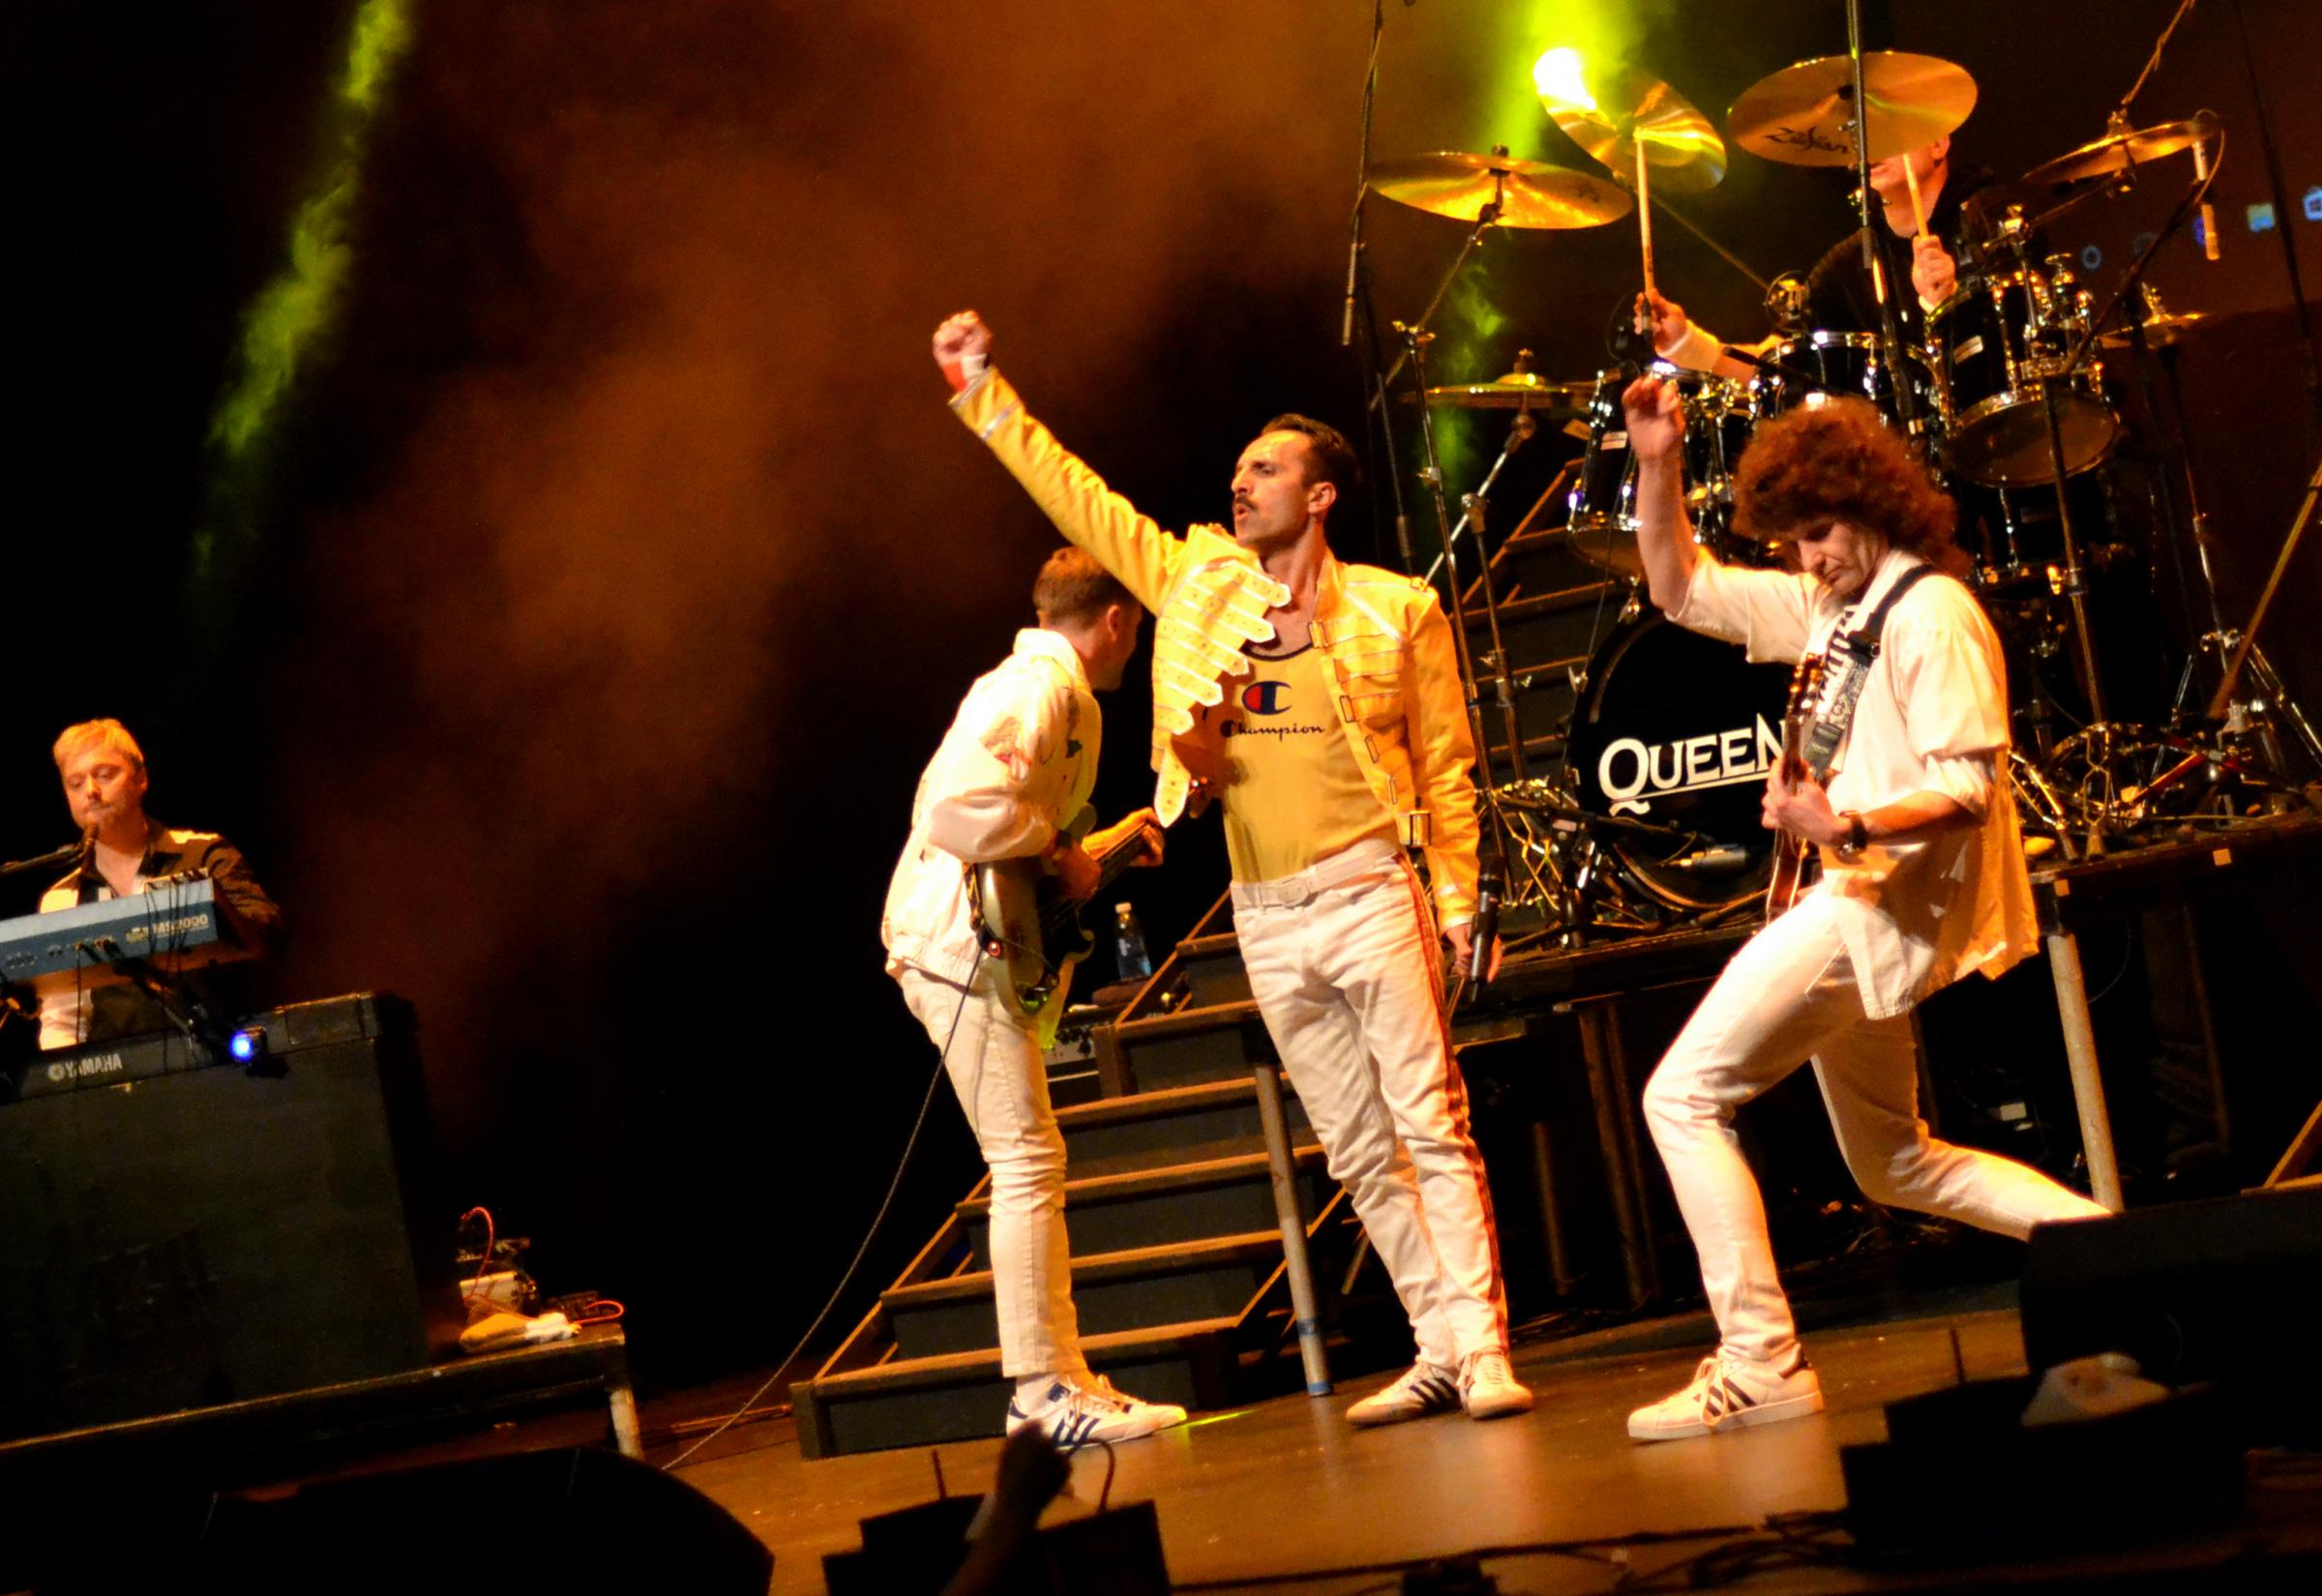 Flash - A tribute to Queen 'As close as it comes: BBC'